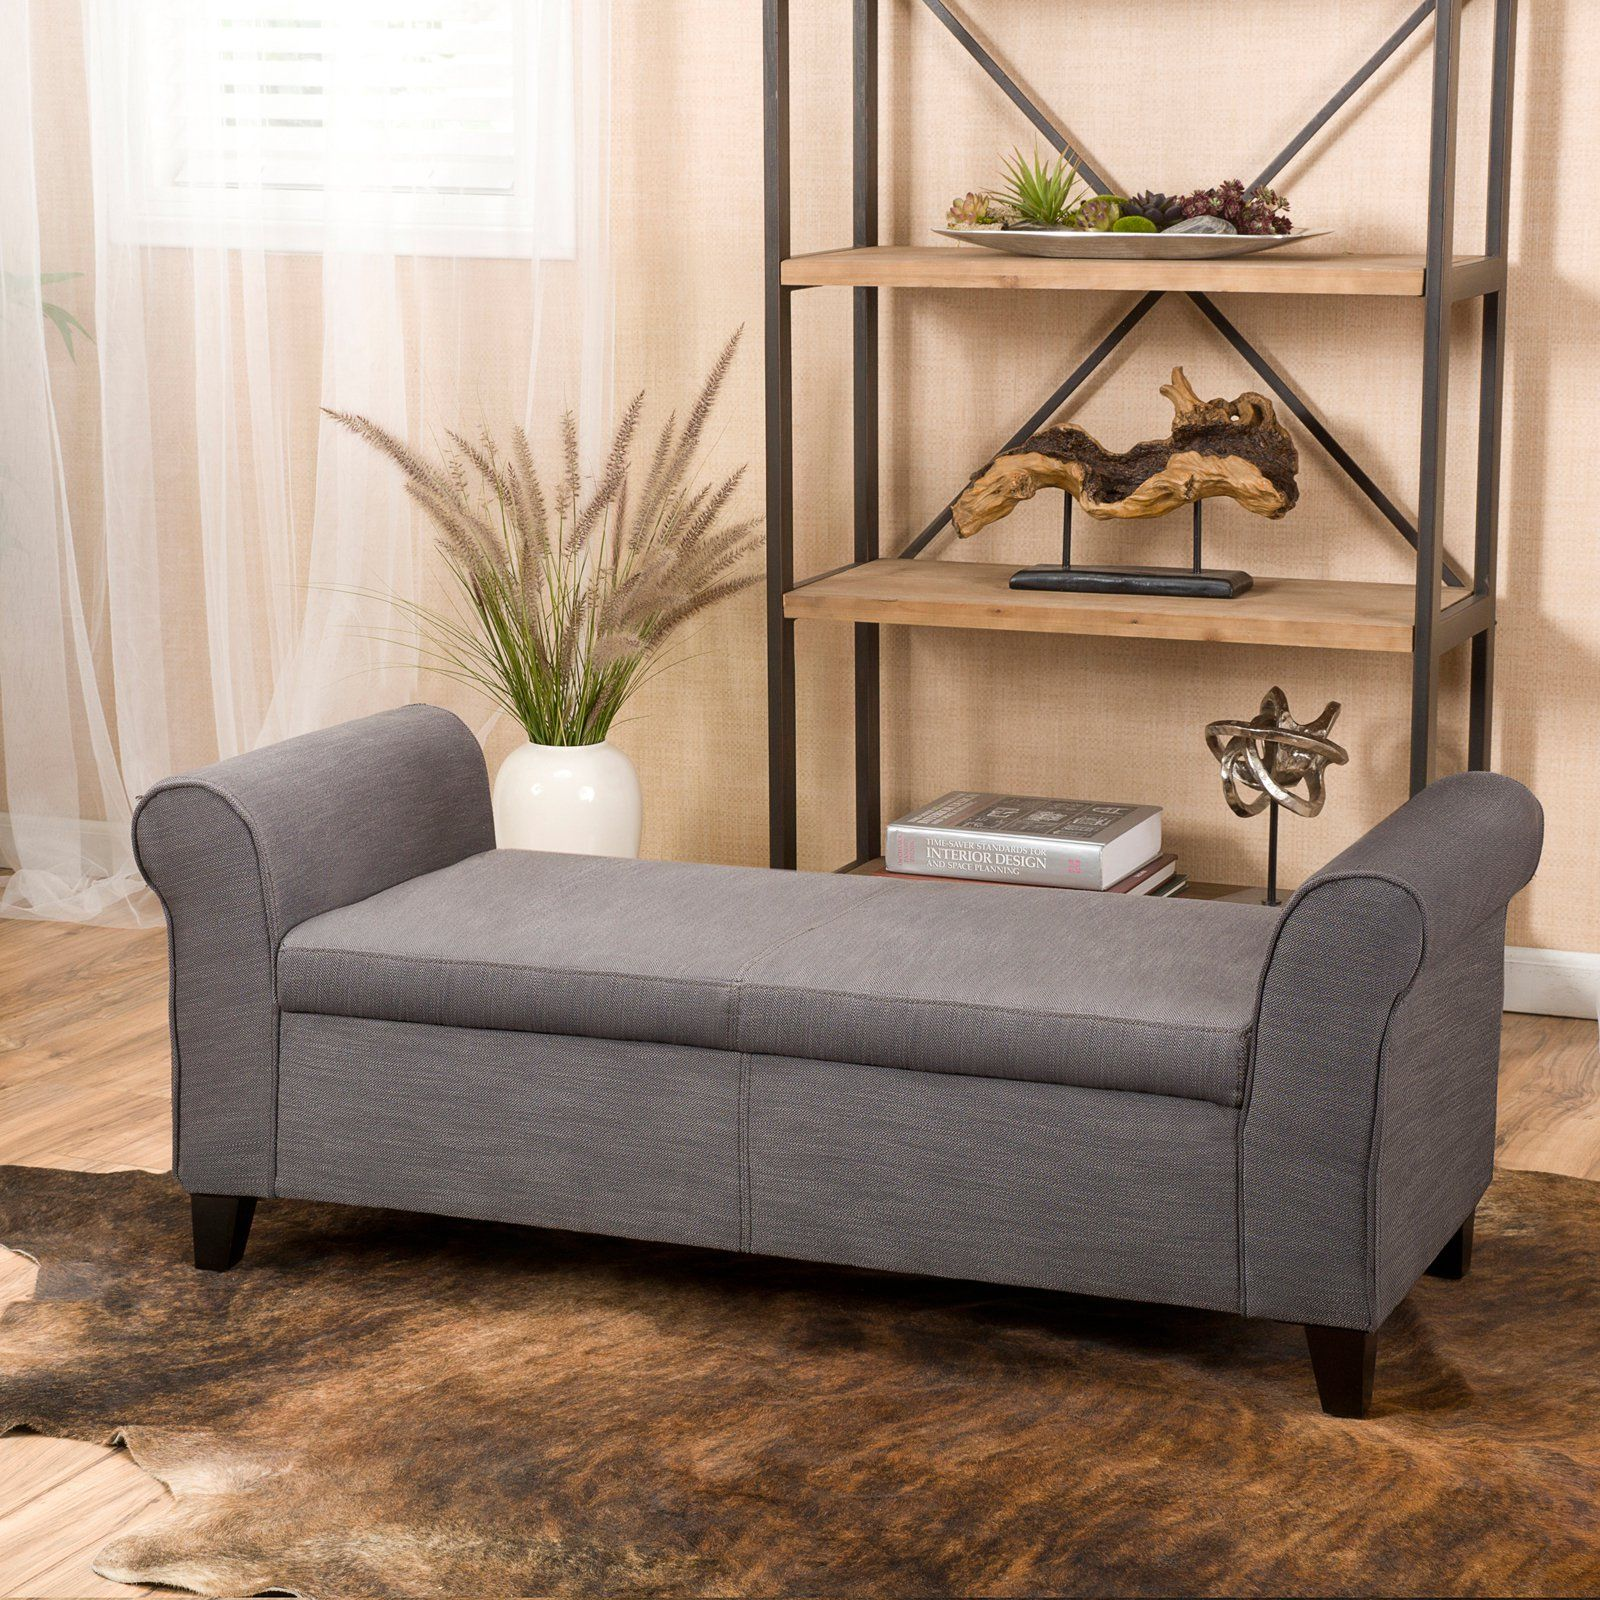 Martin Upholstered Bedroom Bench With Storage Upholstered Bench Bedroom Storage Bench Bedroom Bedroom Storage For Small Rooms